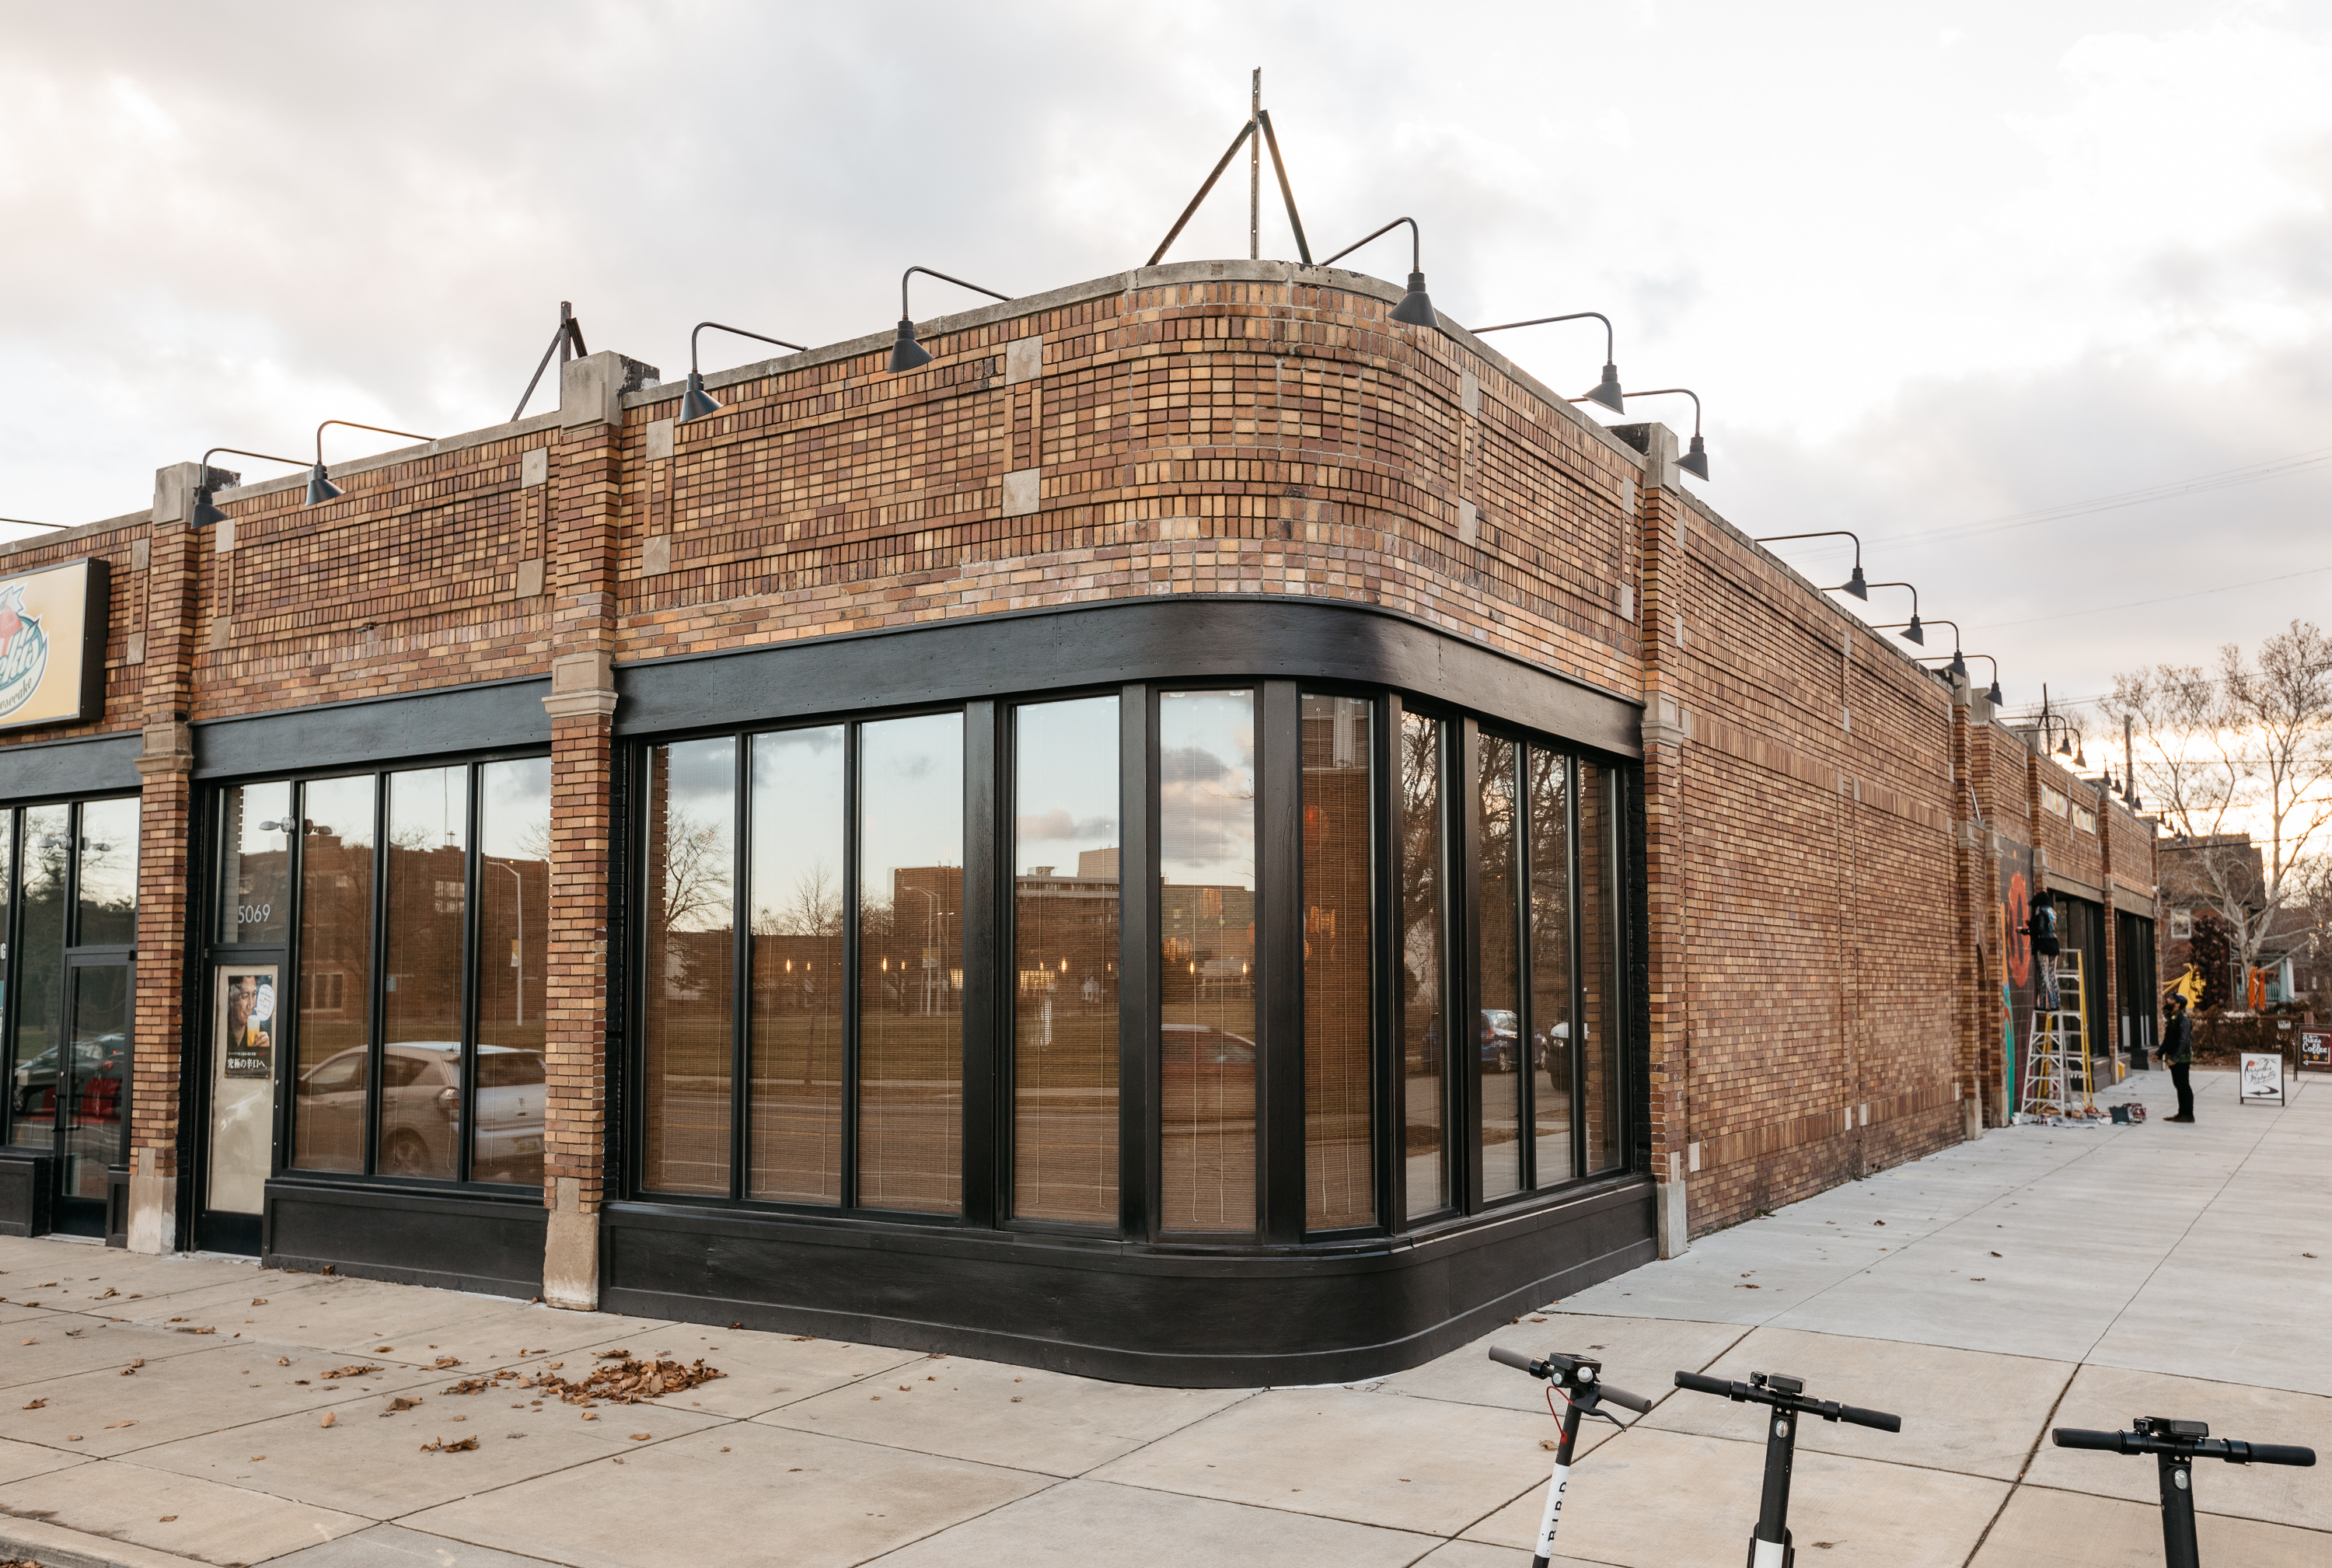 The shuttered Izakaya Katsu is located in a corner brick building with windows wrapping around the curve on Trumbull and Putnam in Woodbridge.